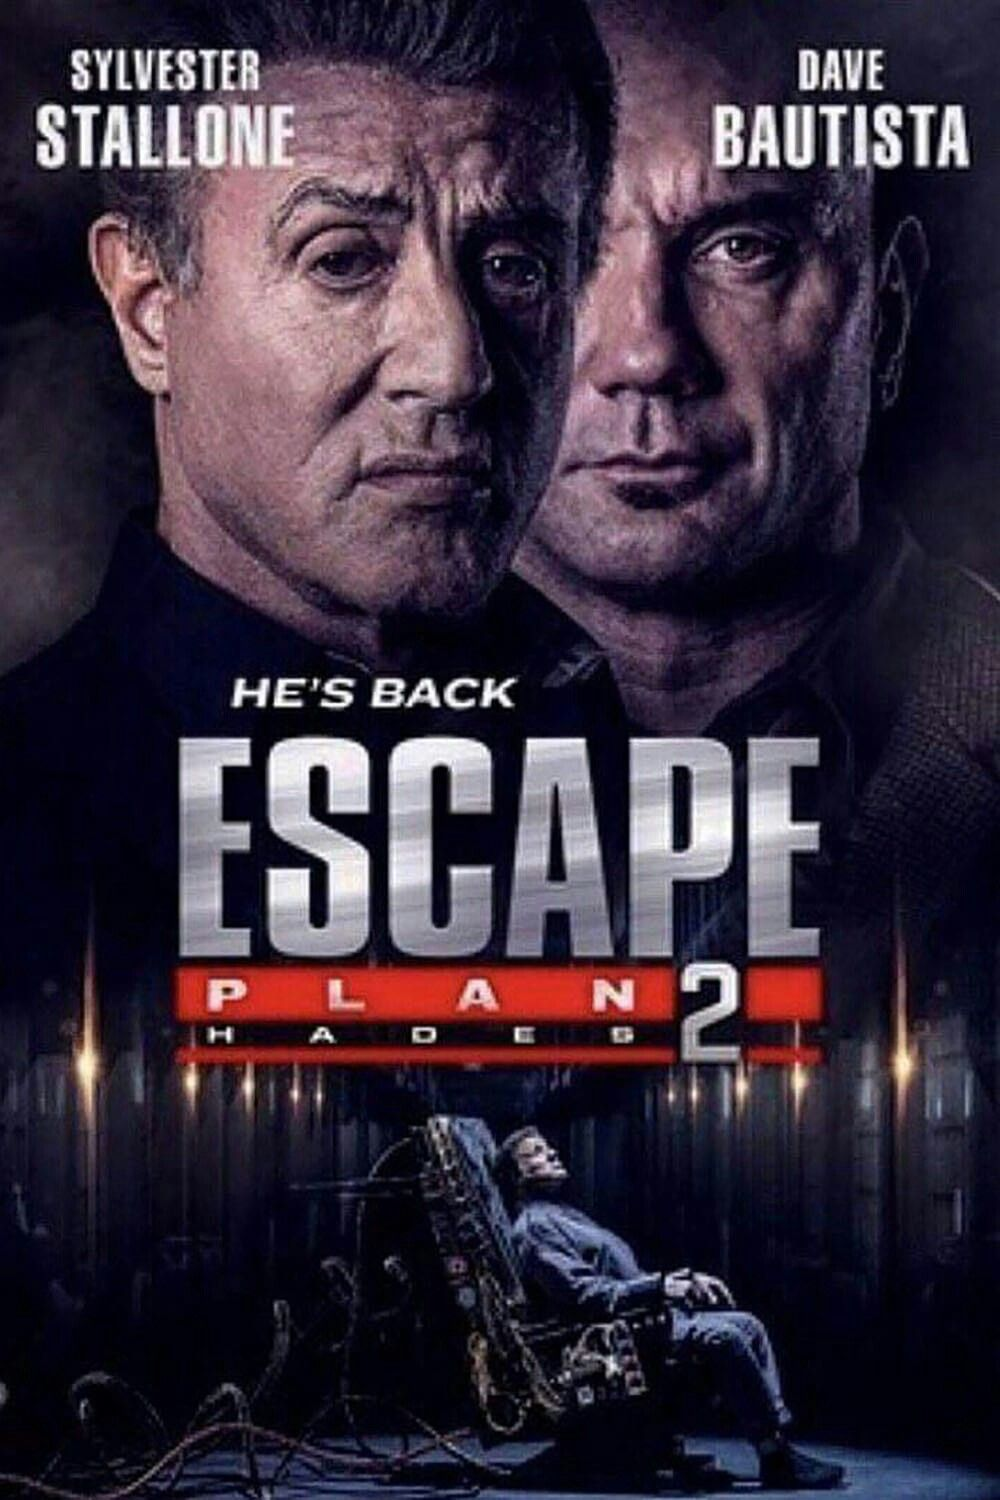 escape plan 2 hades movie poster fantastic movie posters